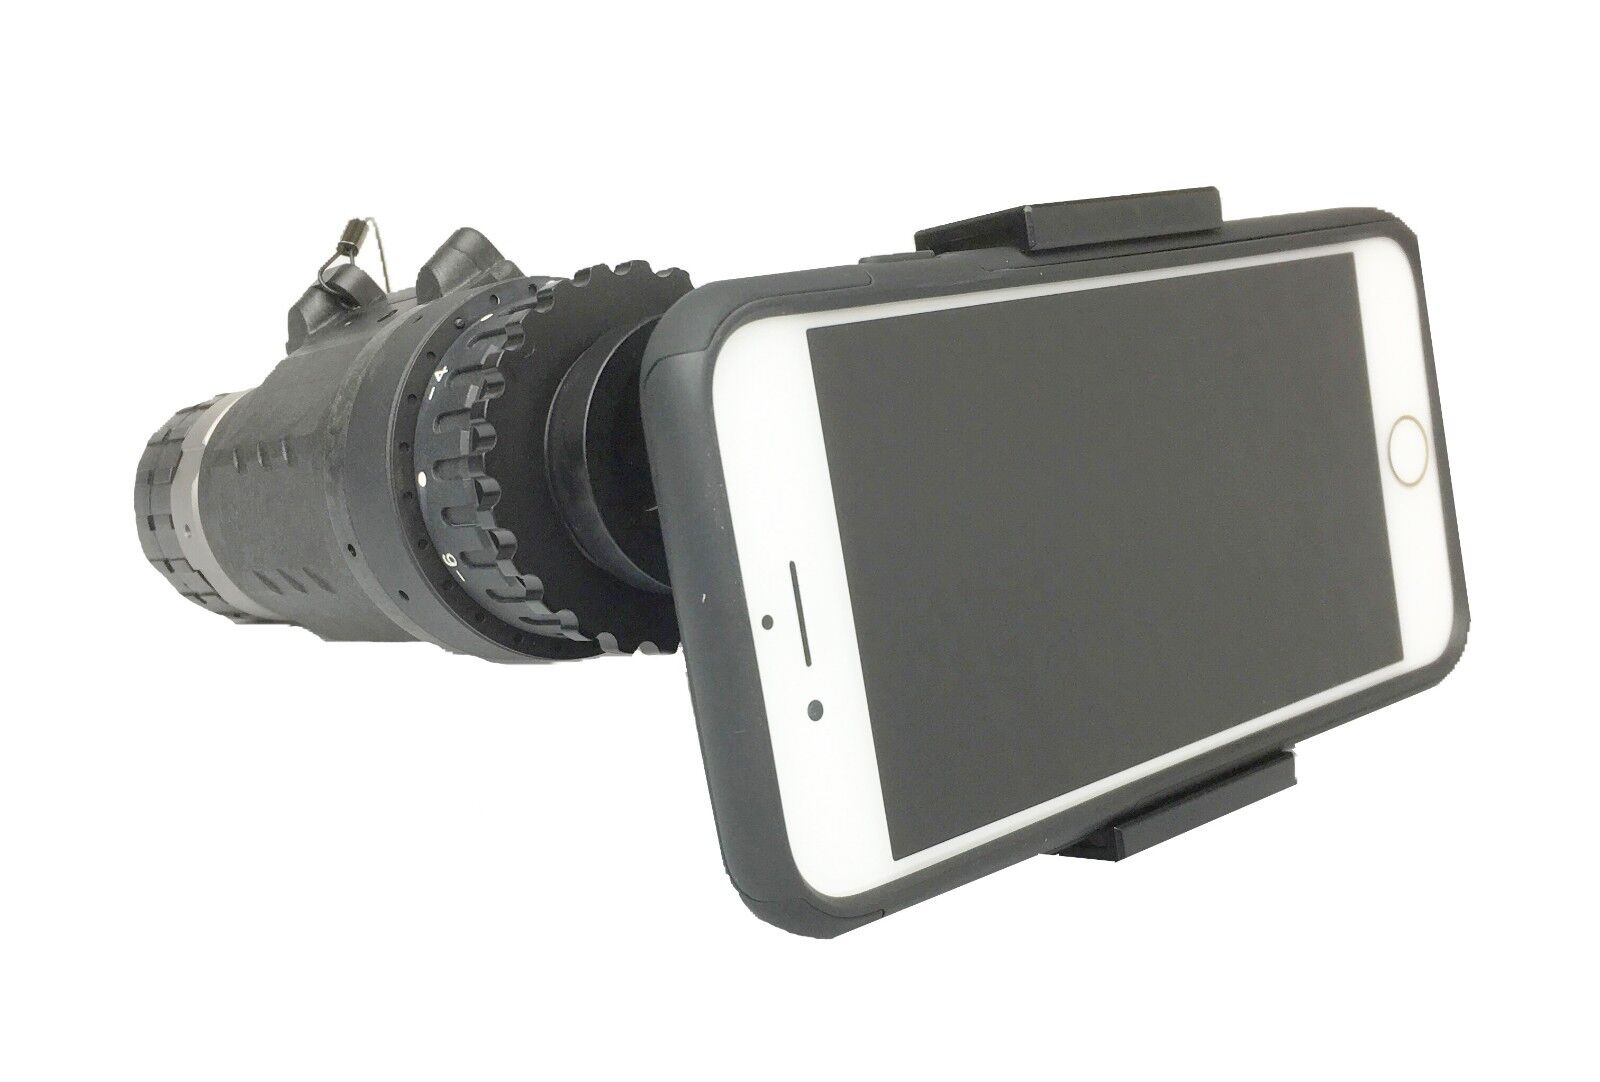 AU Universal Smartphone Adapter for Thermal / Night Vision M